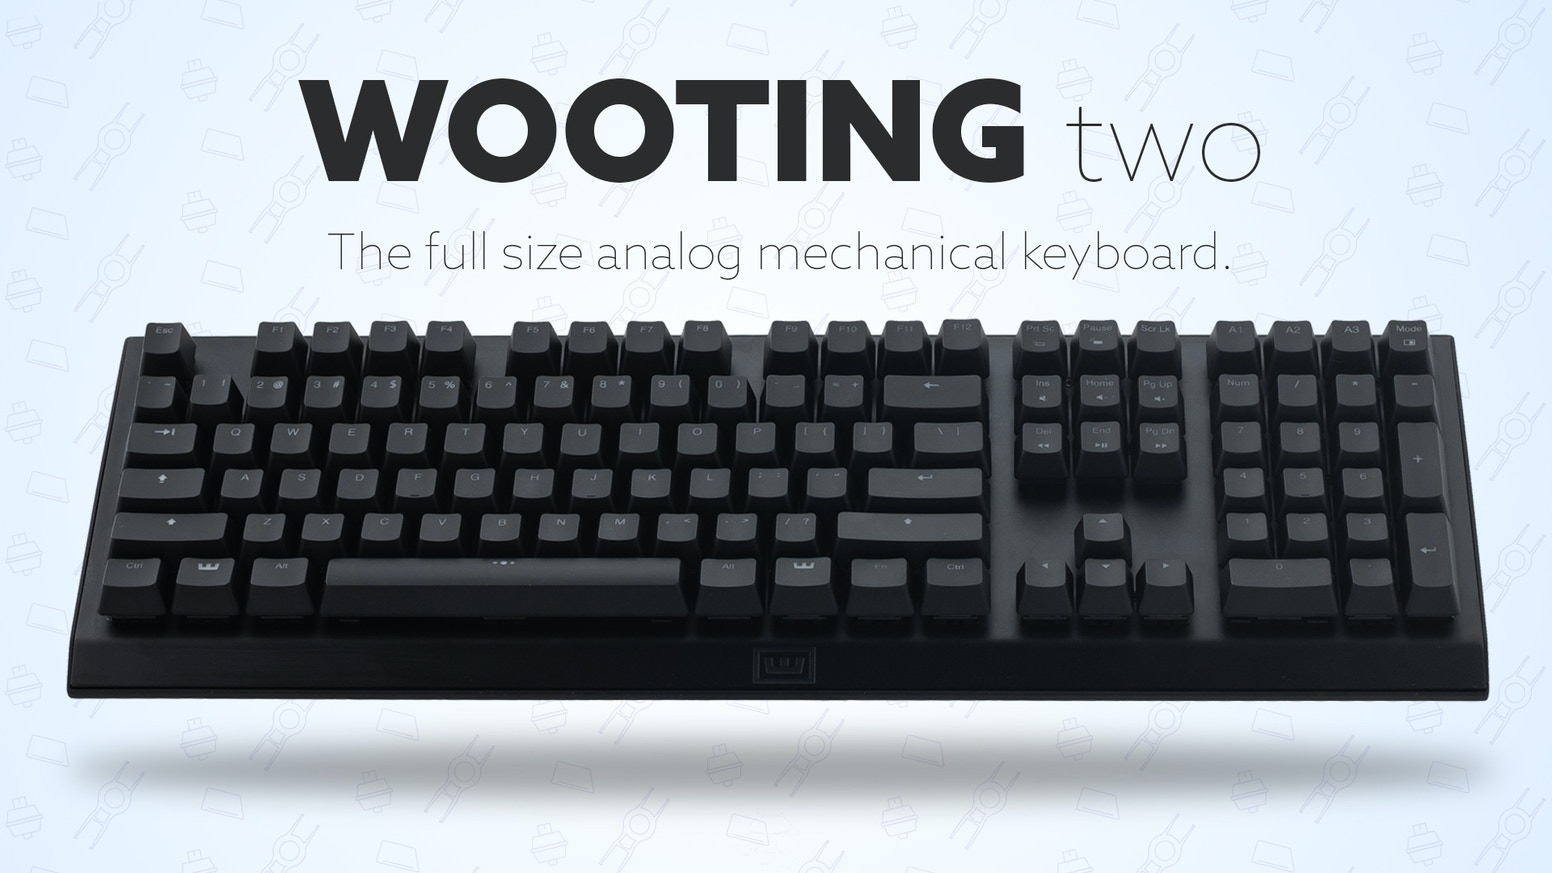 A special thanks to all 906(!) Backers who made the Wooting two a reality!